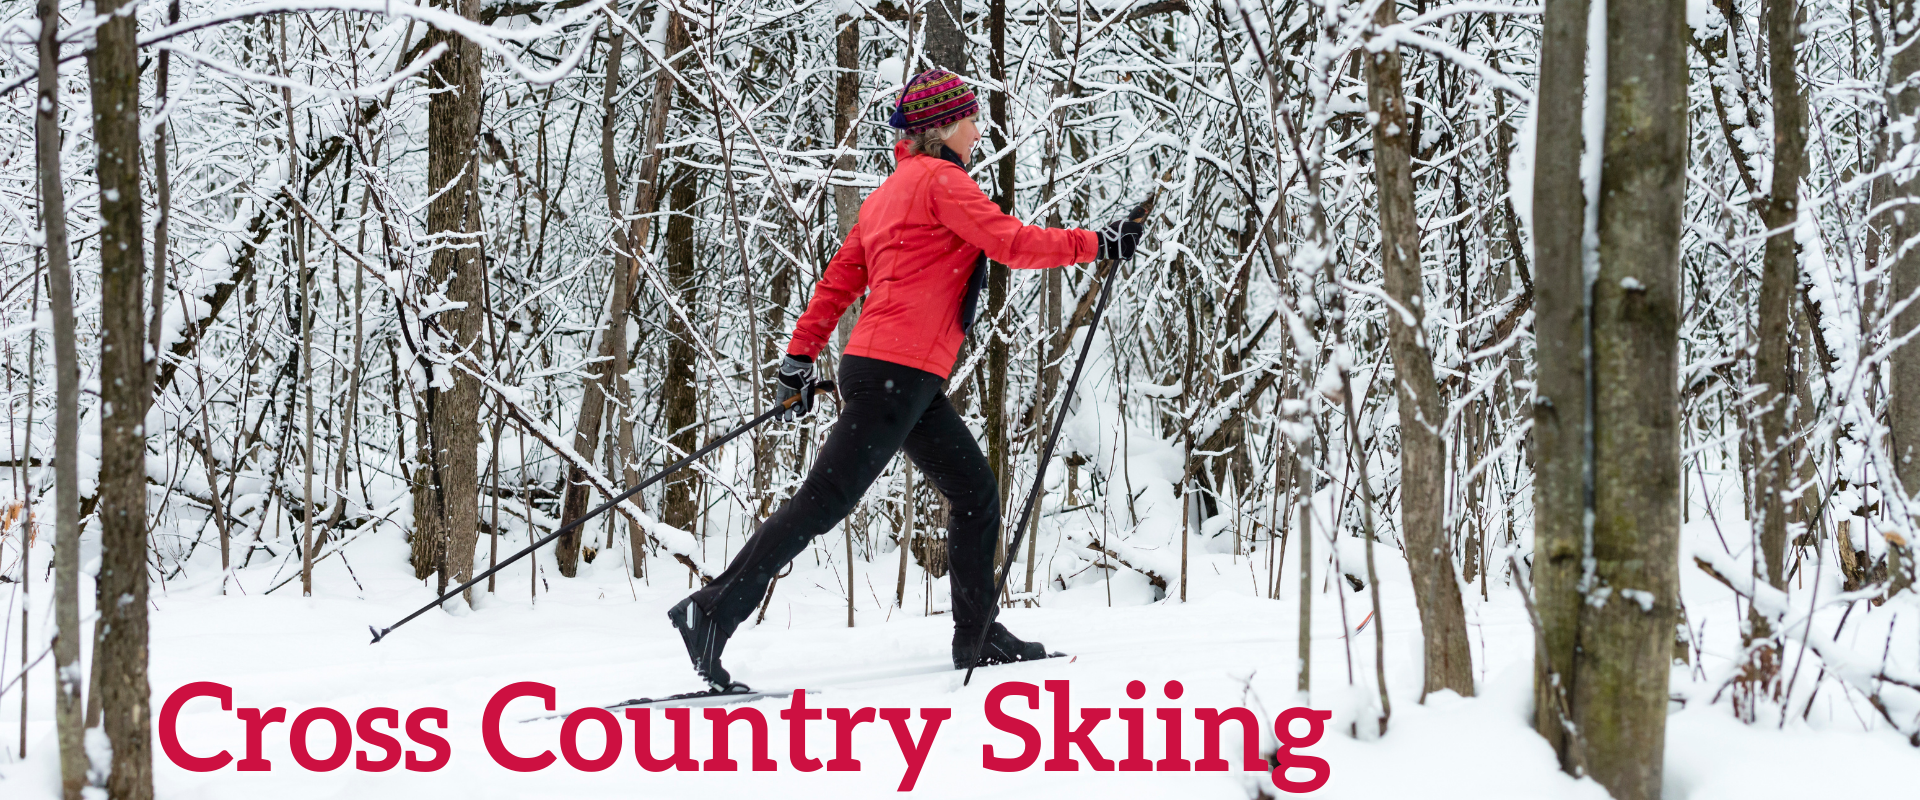 This image shows a female on a cross country ski trail through the trees.